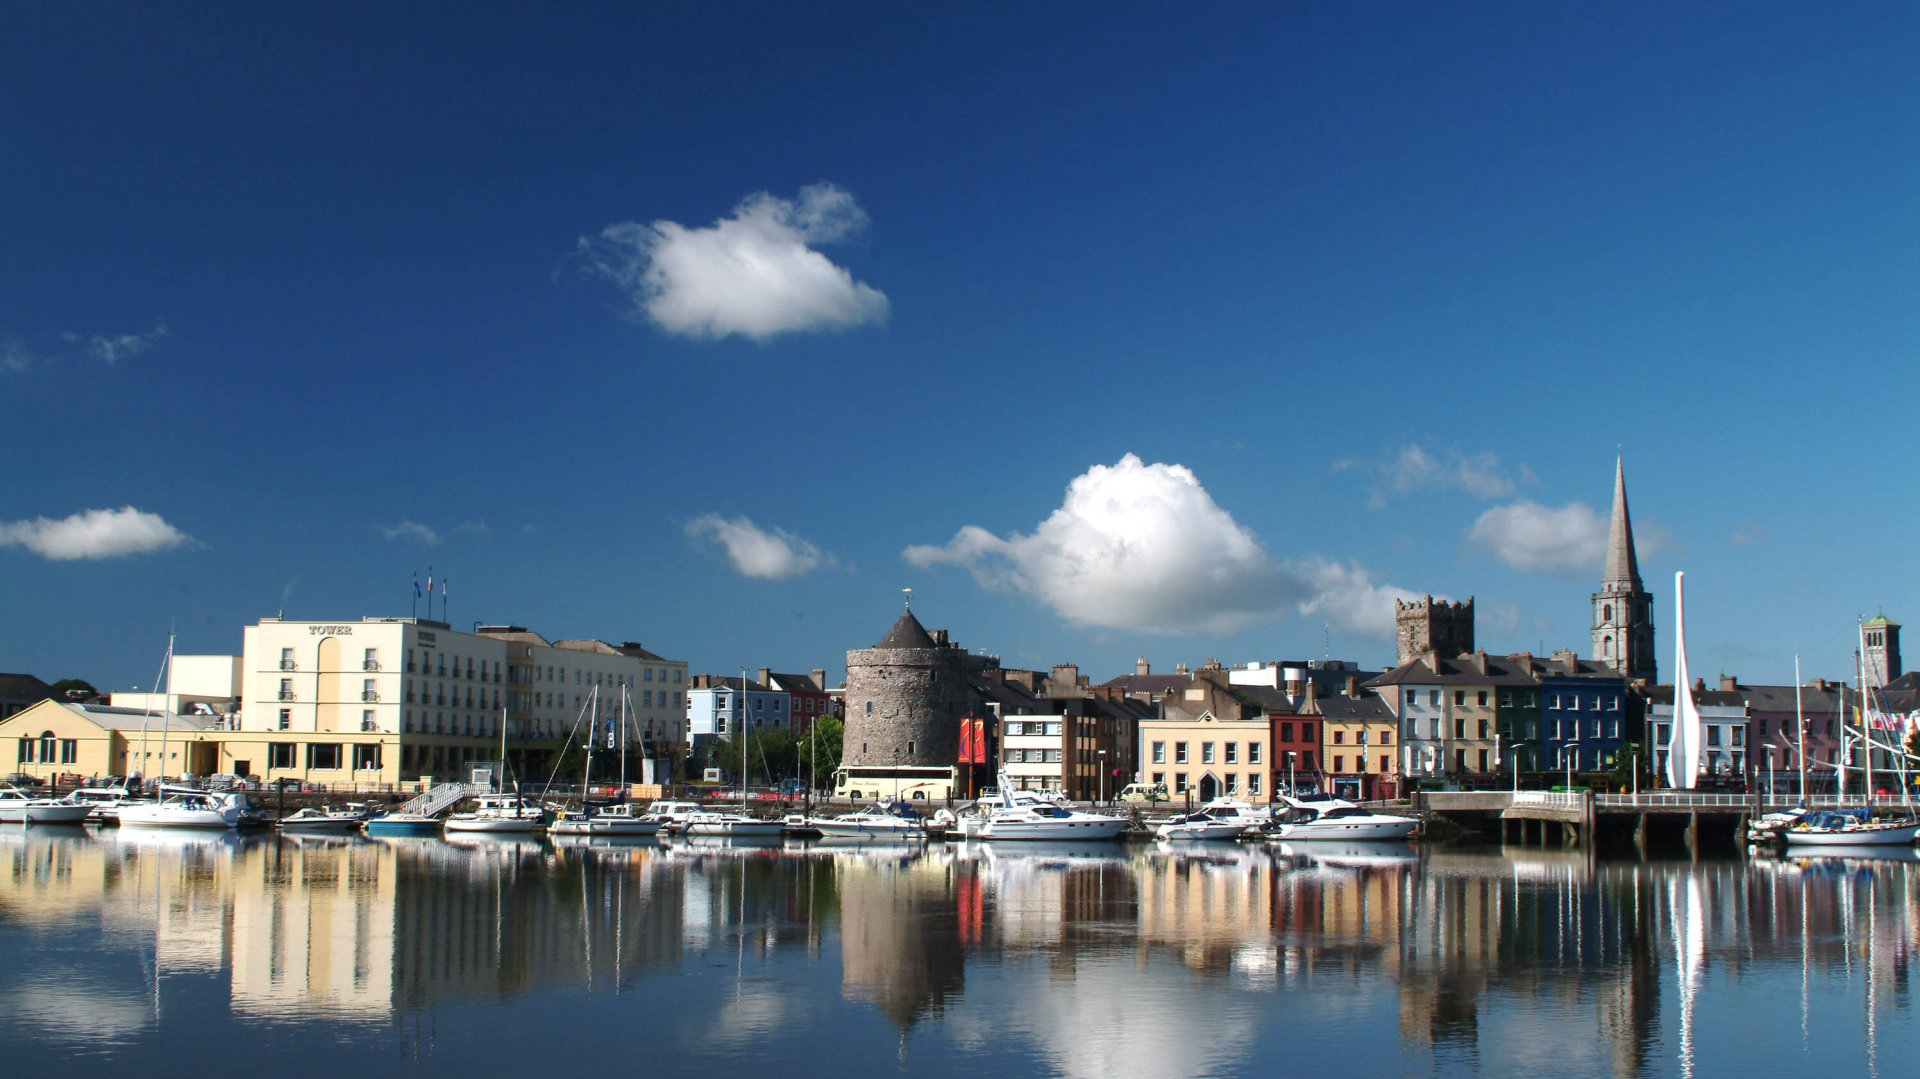 Waterford quays with reflection on the river